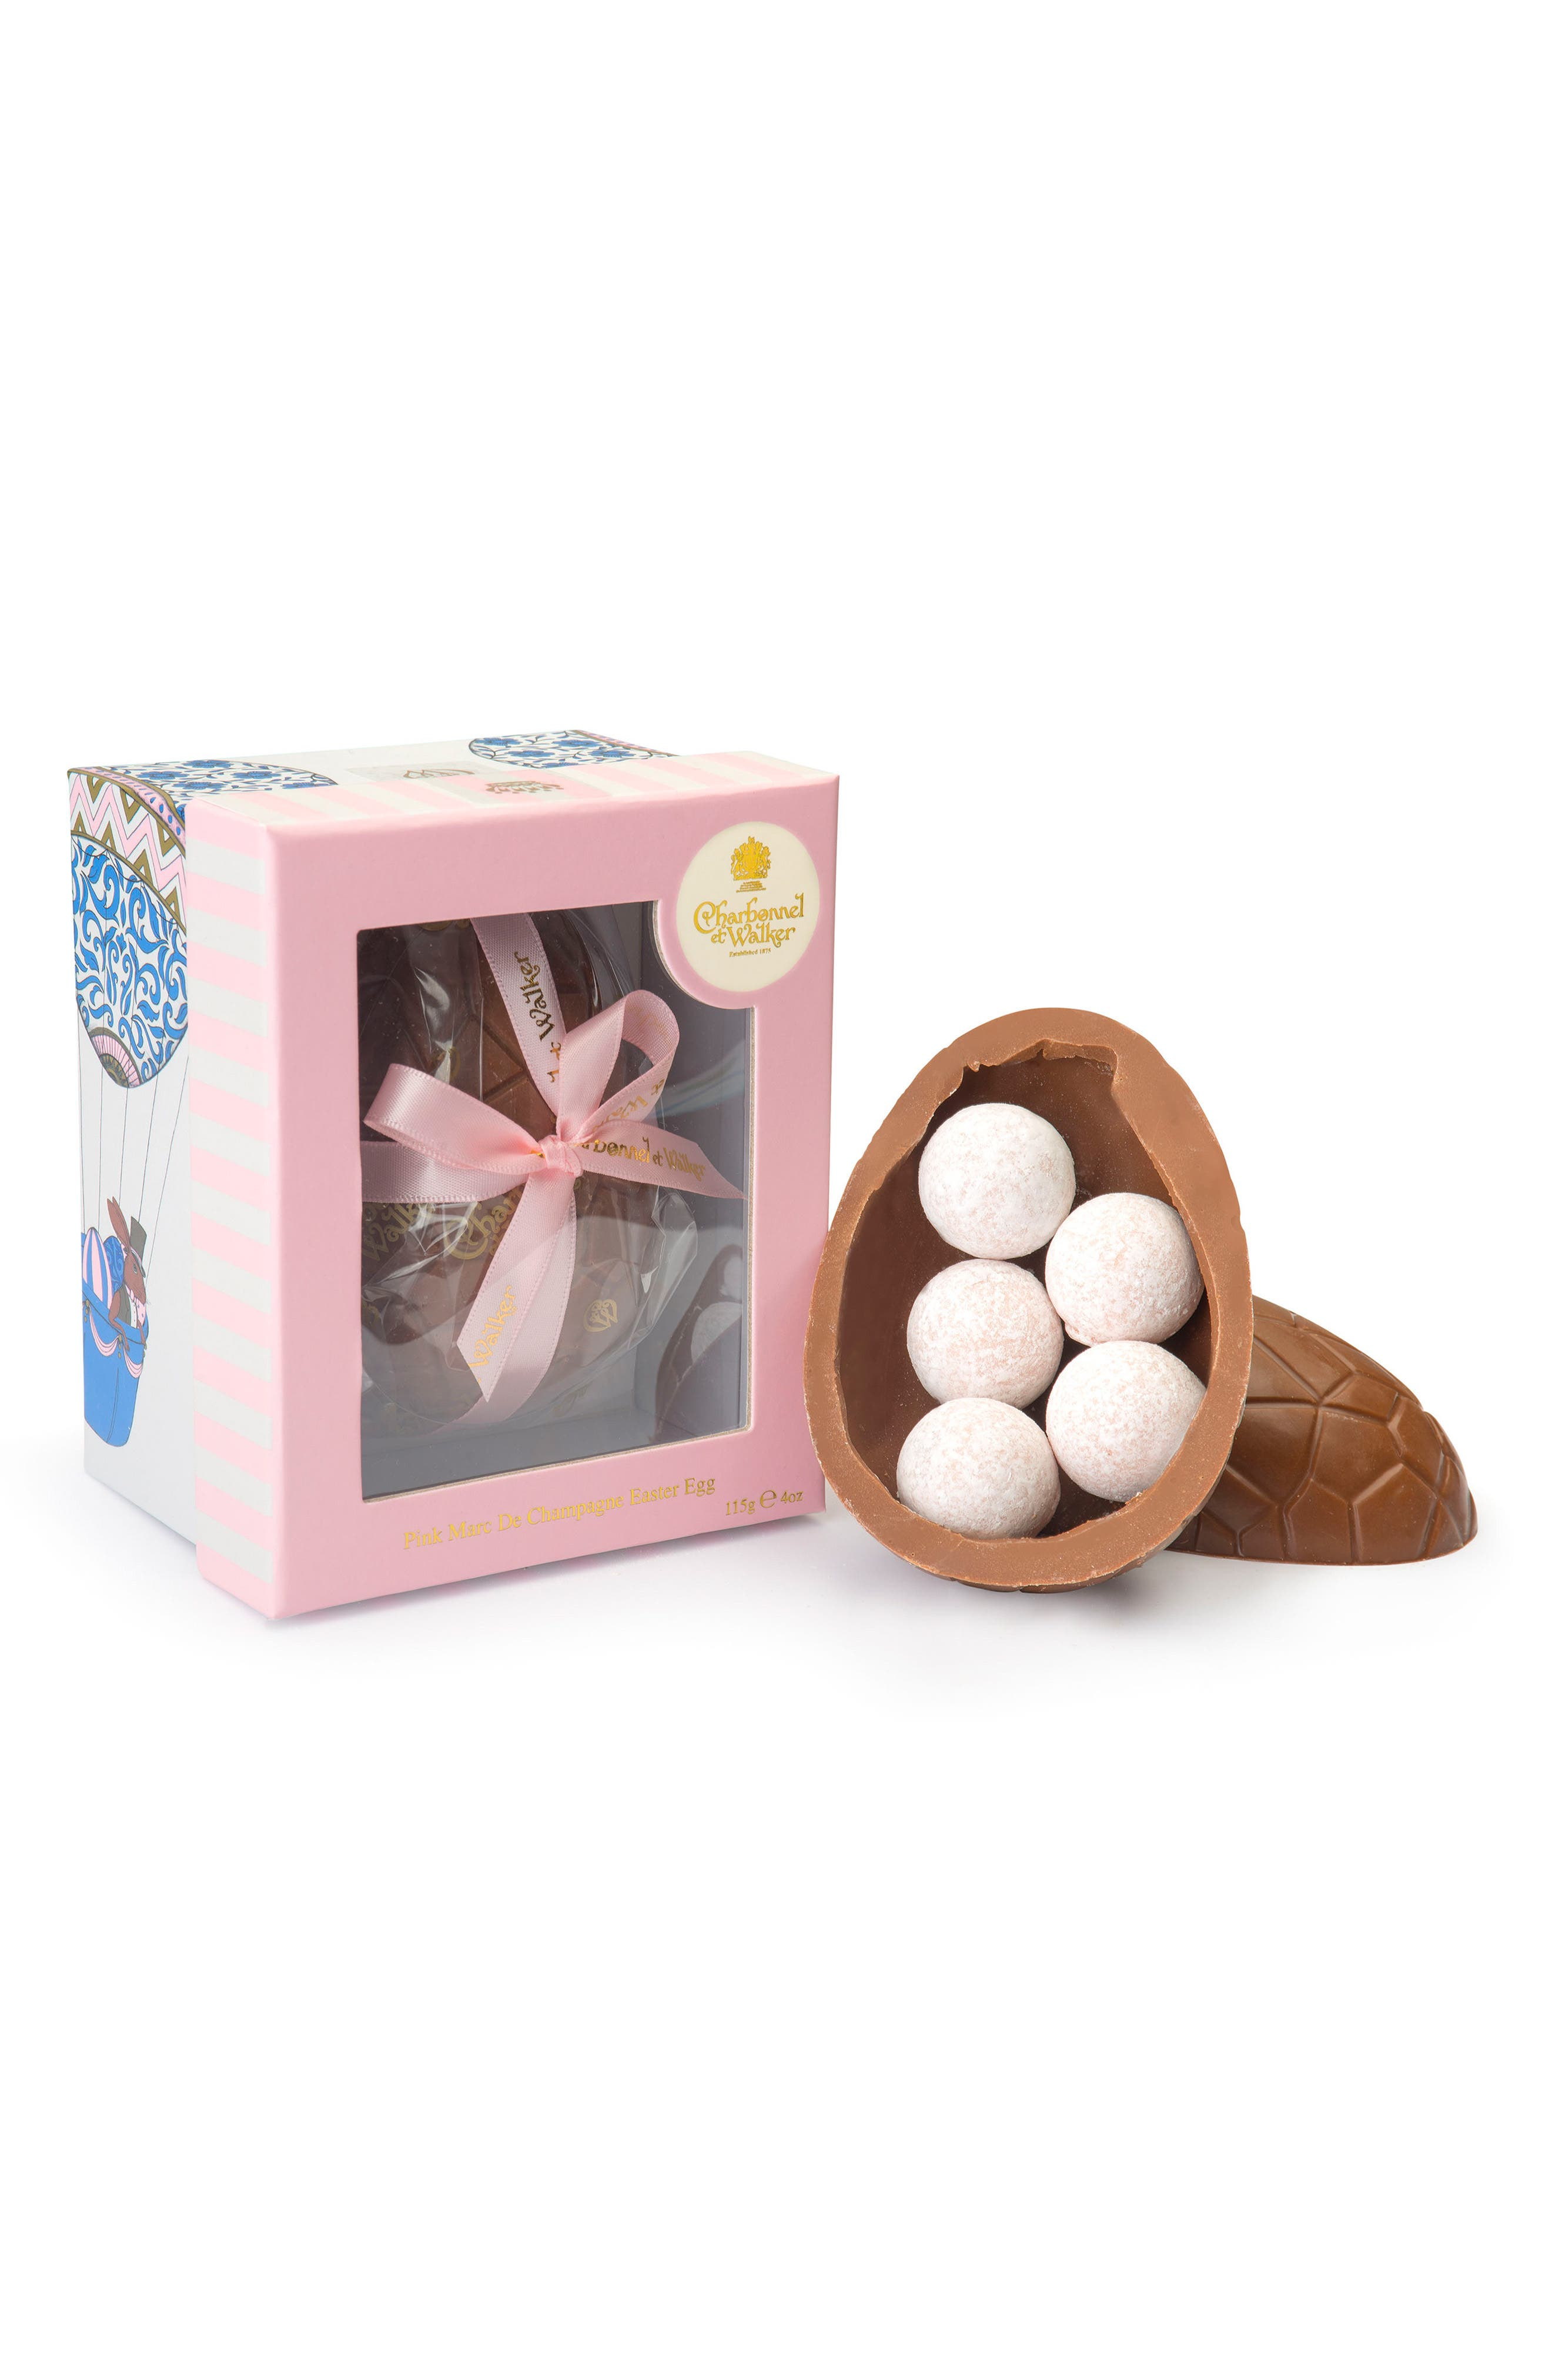 Marc de Champagne Truffles & Chocolate Egg in Gift Box,                             Main thumbnail 1, color,                             650